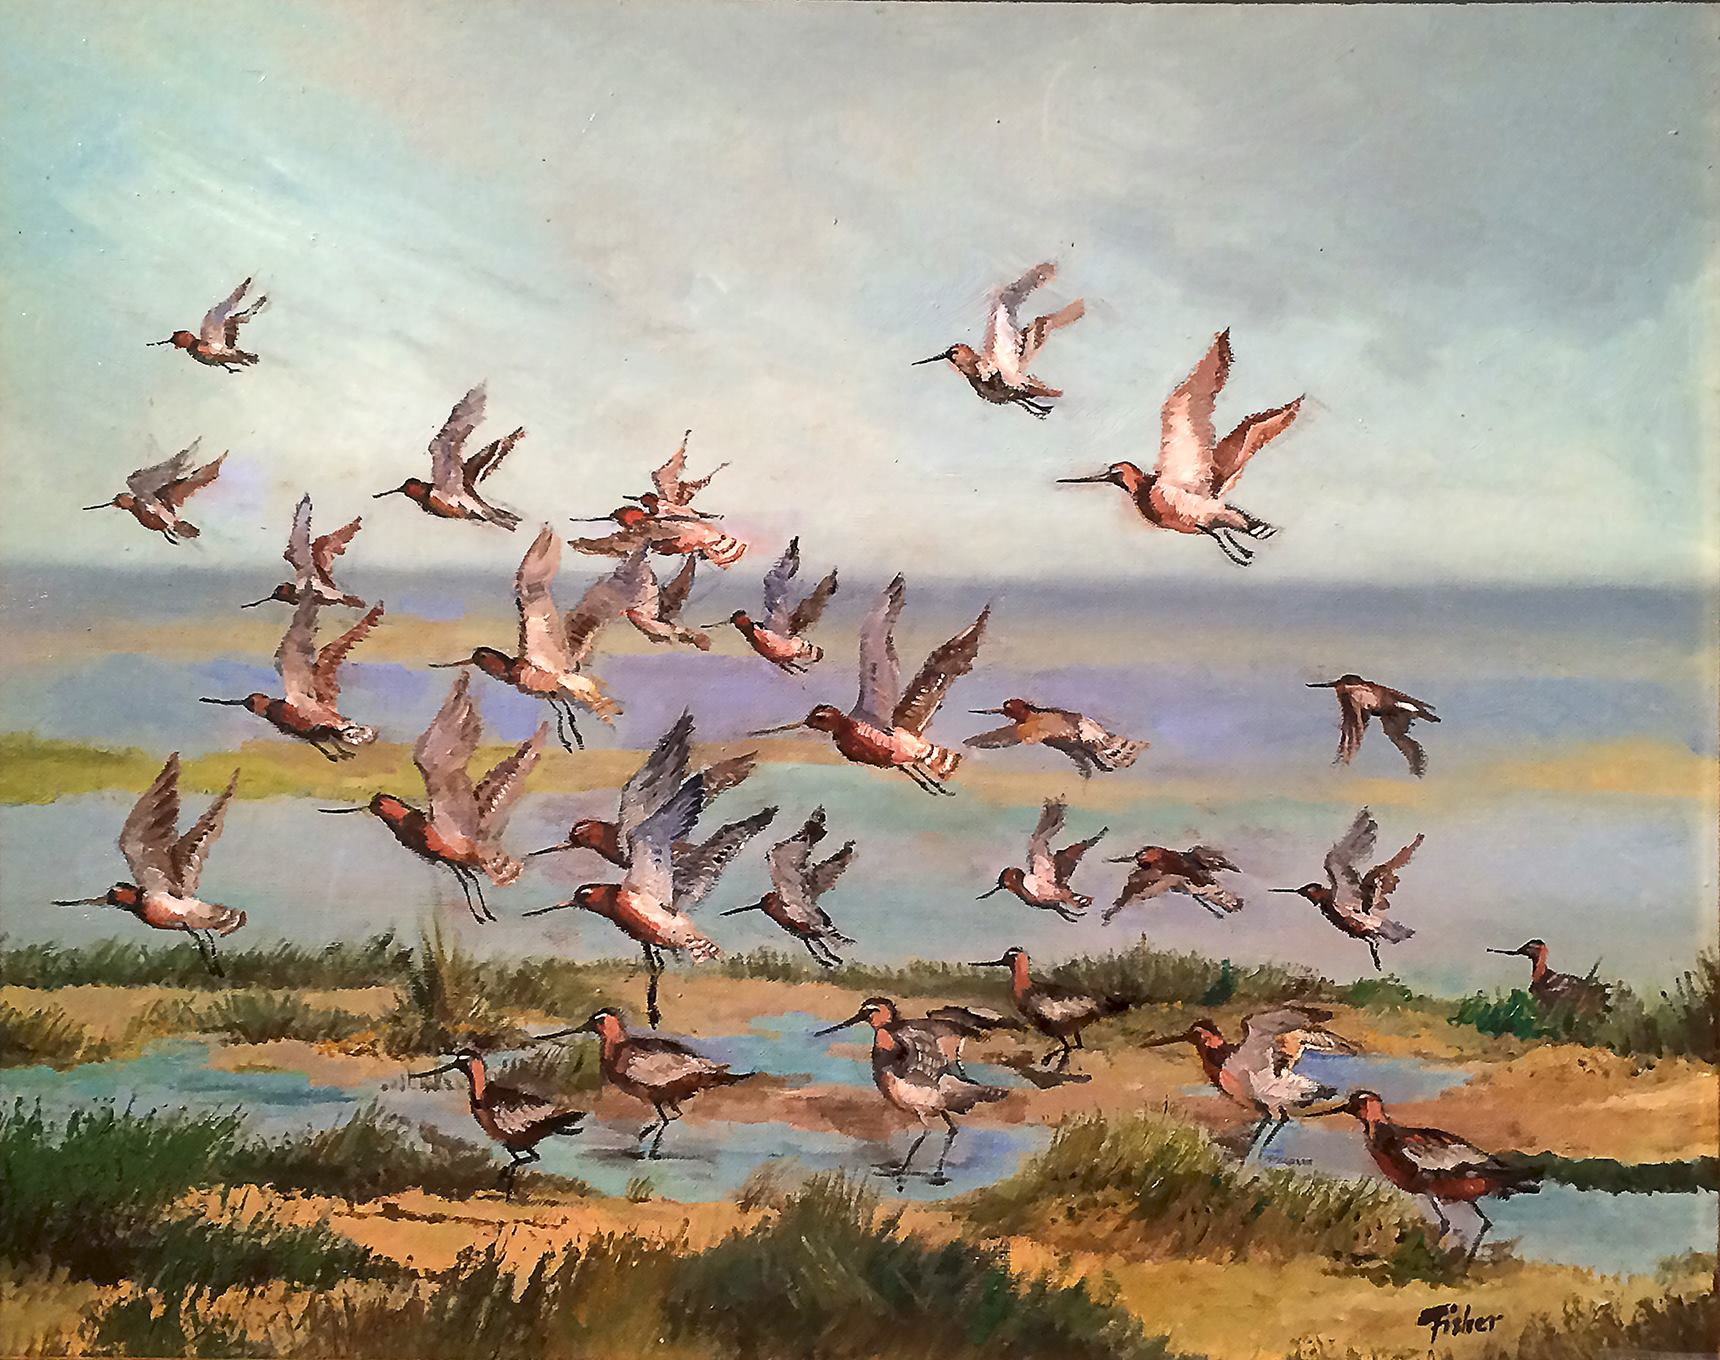 Bar-tailed Godwits by Reg Fisher